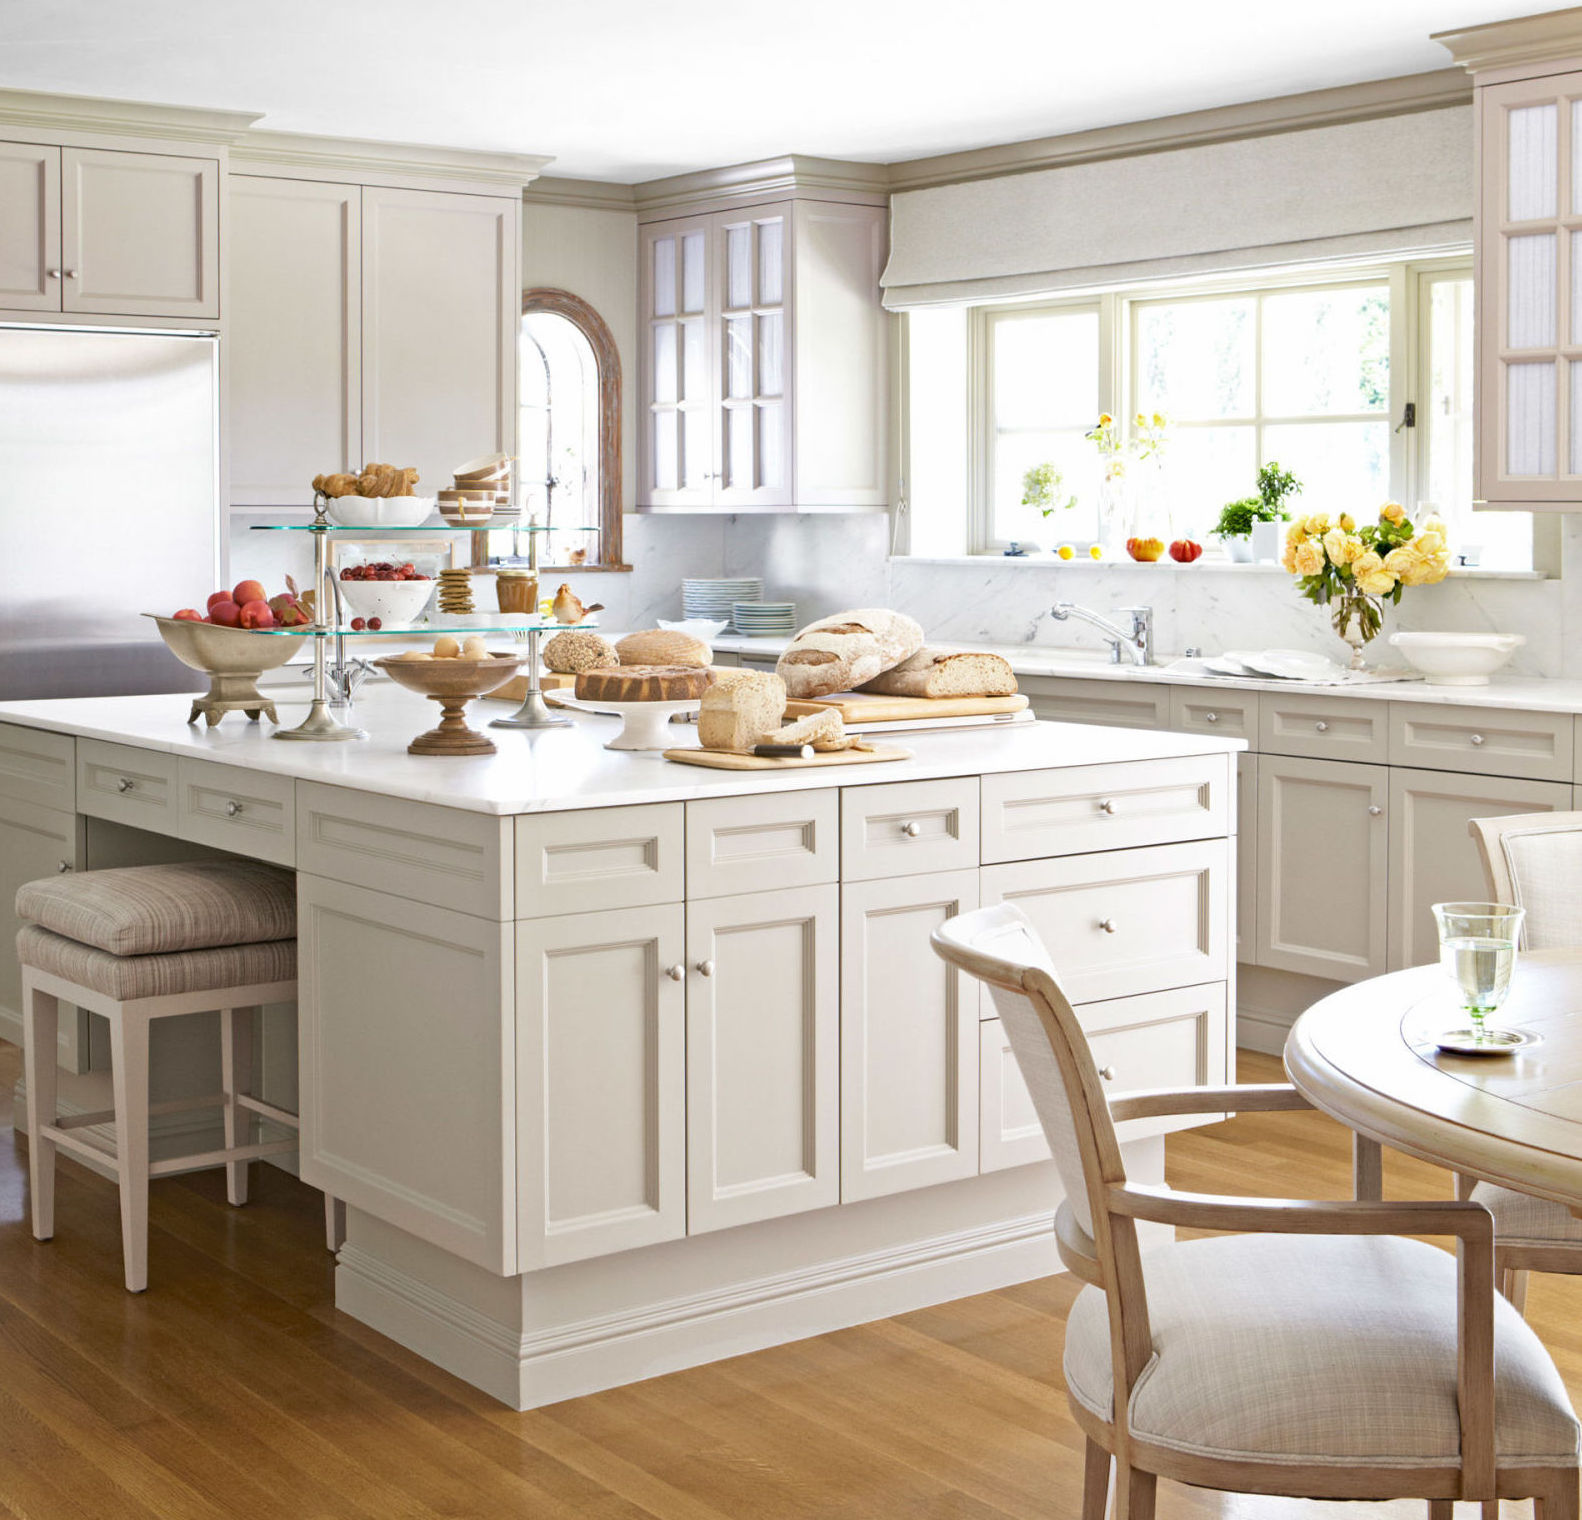 Pale Neutral Kitchens Atticmag - Light grey green kitchen cabinets